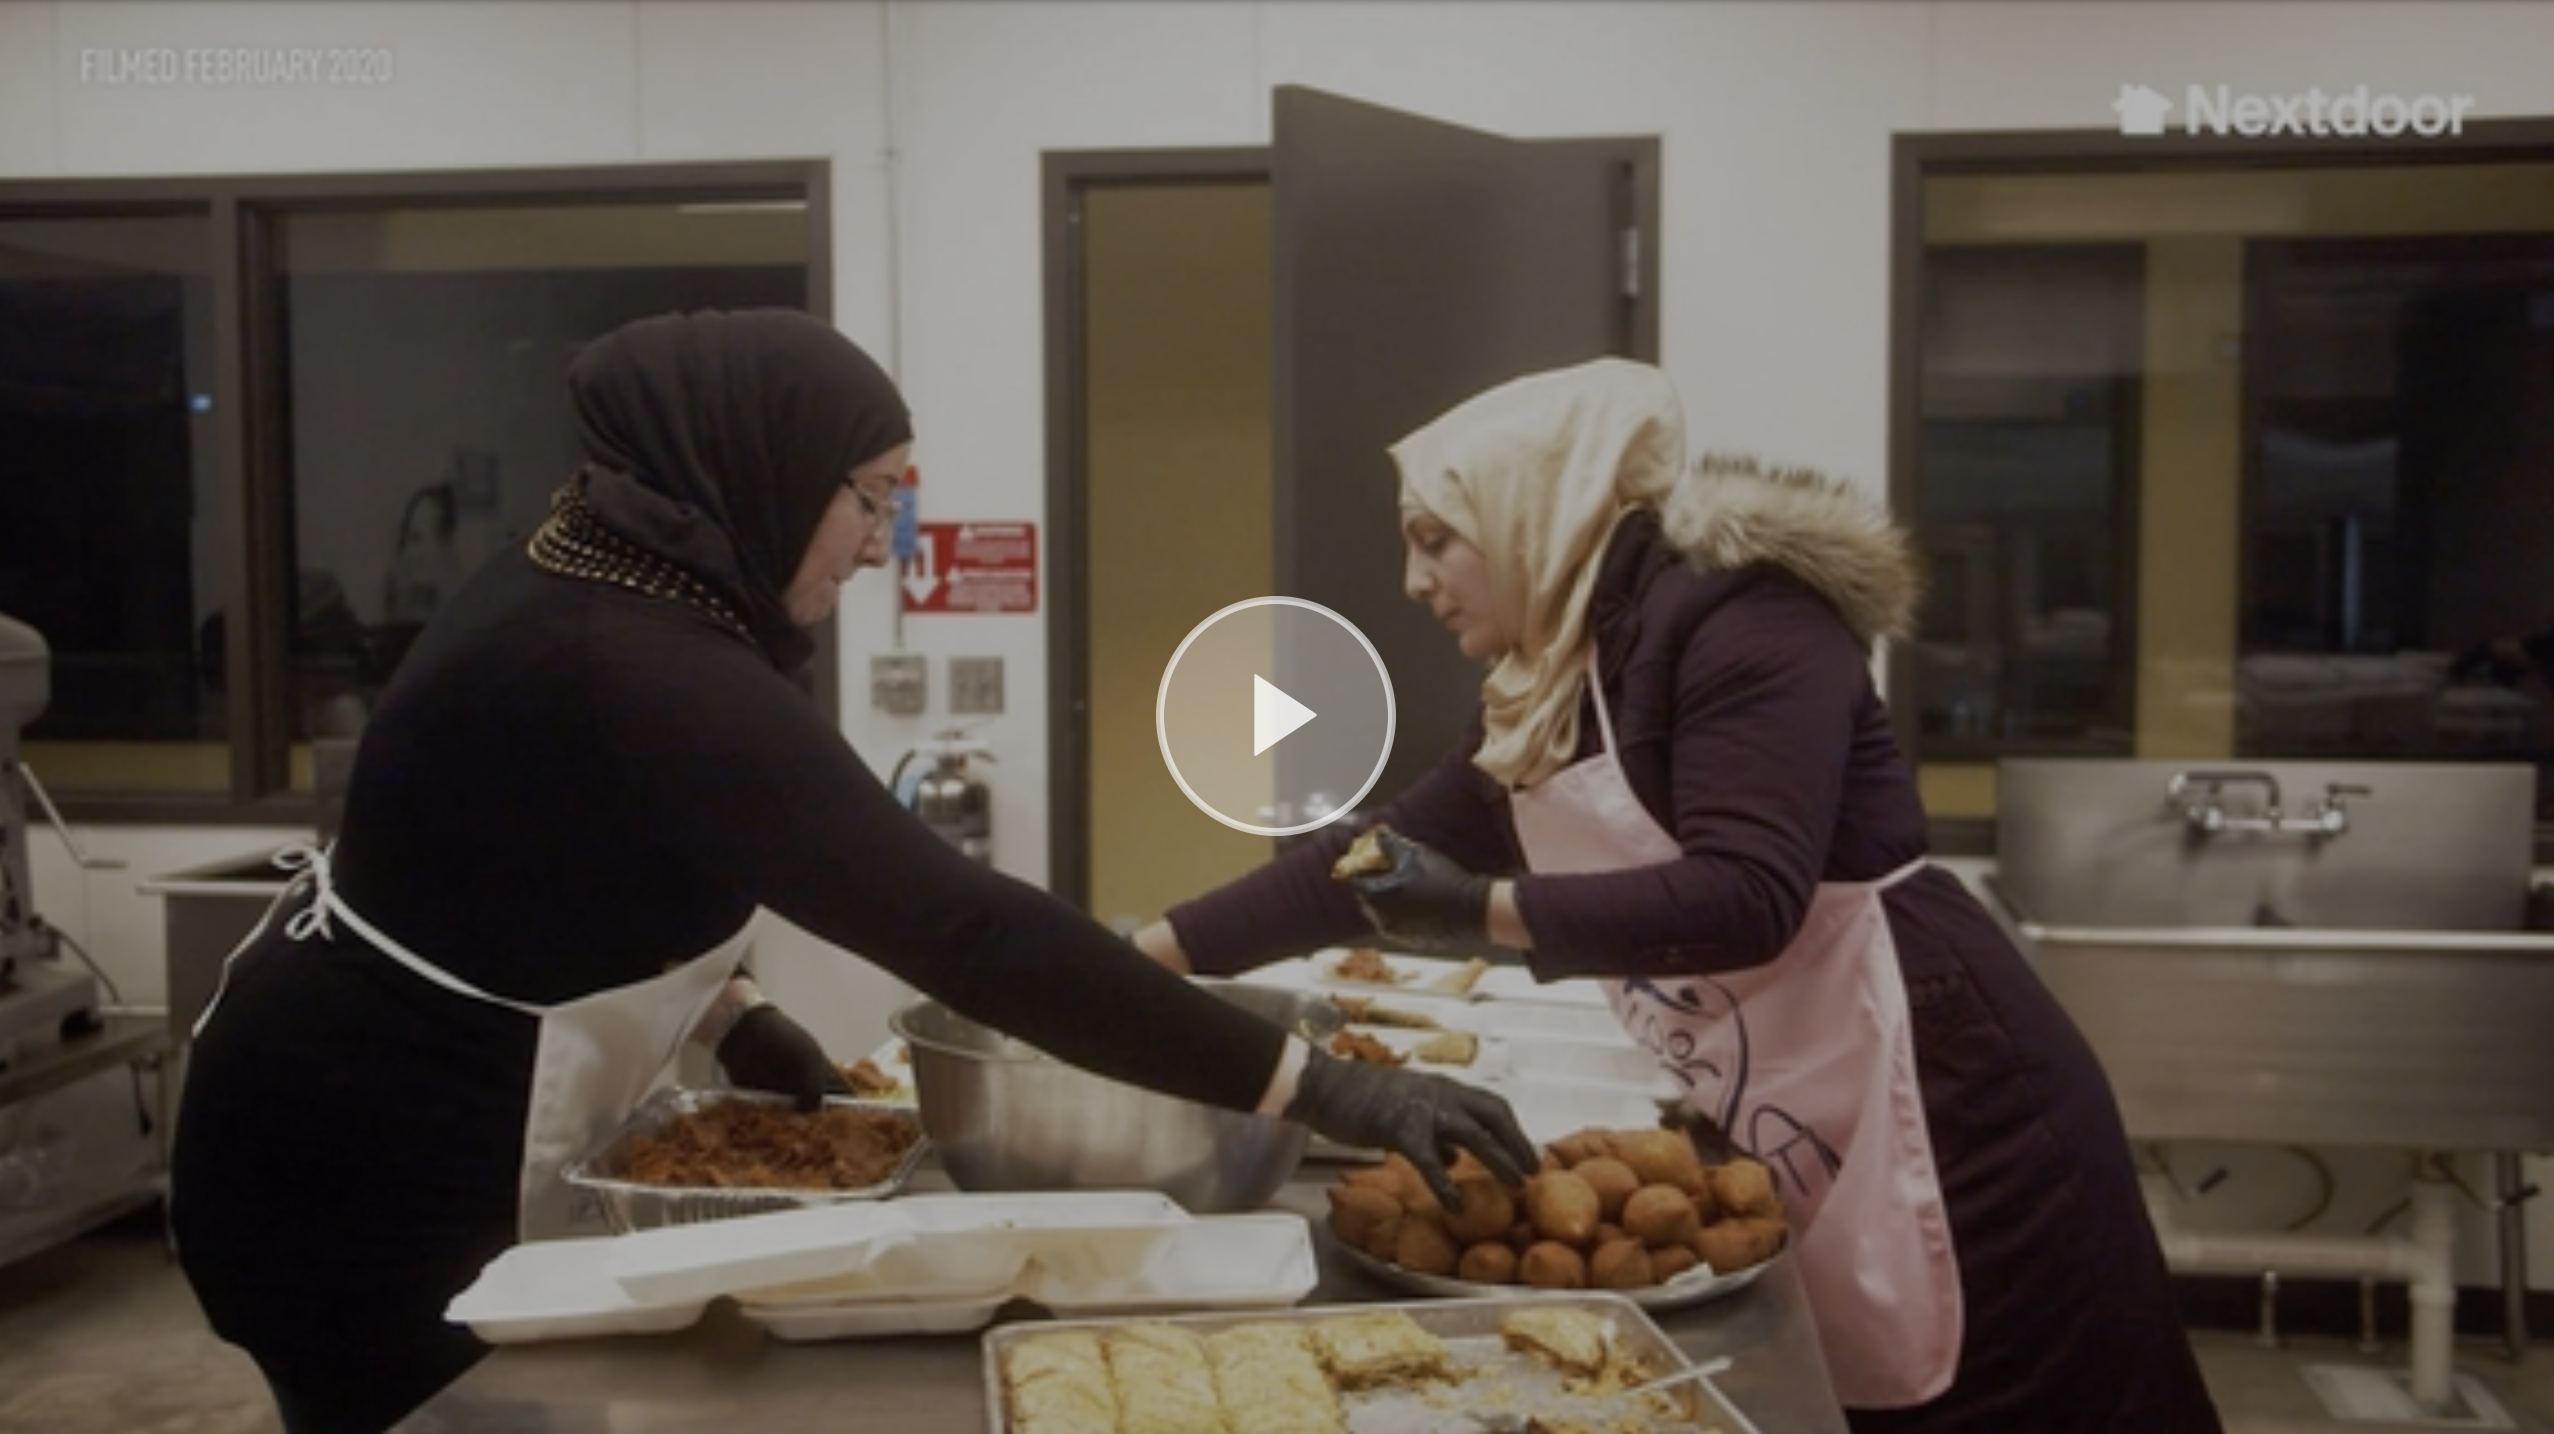 S1E760From Syria to Saint Louis: Refugees Give Back By Feeding the Homeless